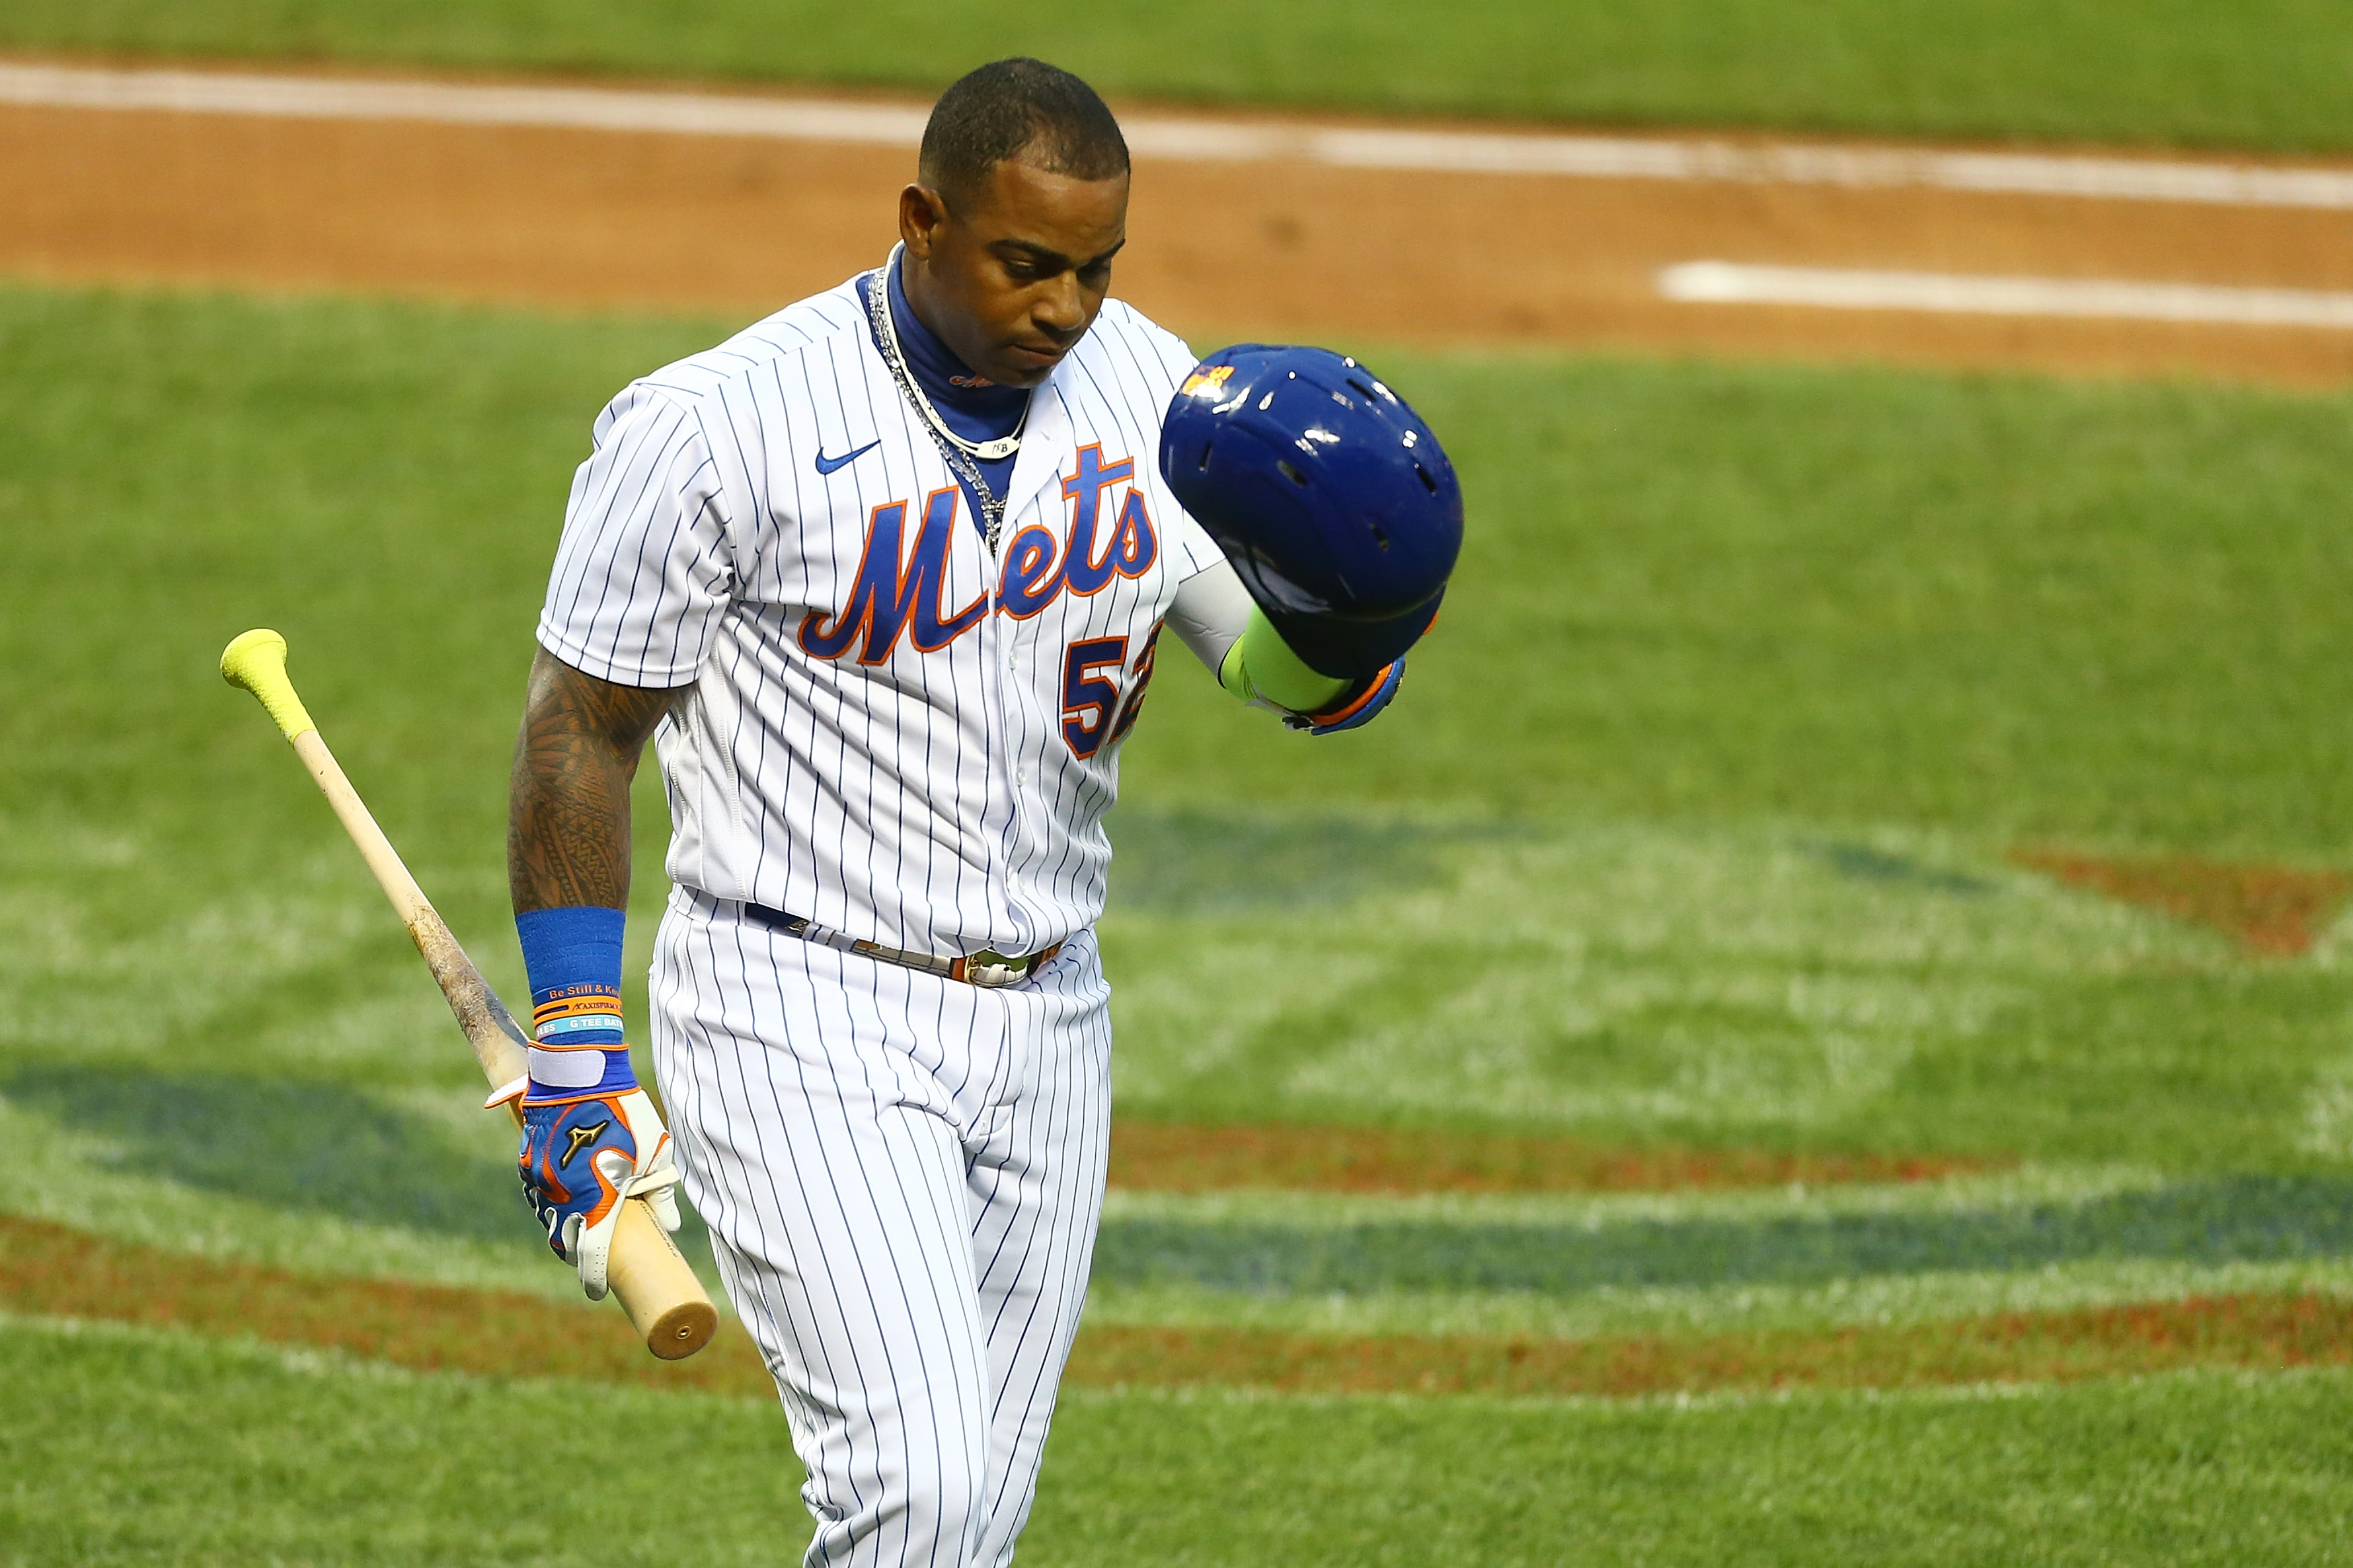 Yoenis Céspedes has opted out of MLB season for 'Covid-related reasons' after mysteriously disappearing before Mets game